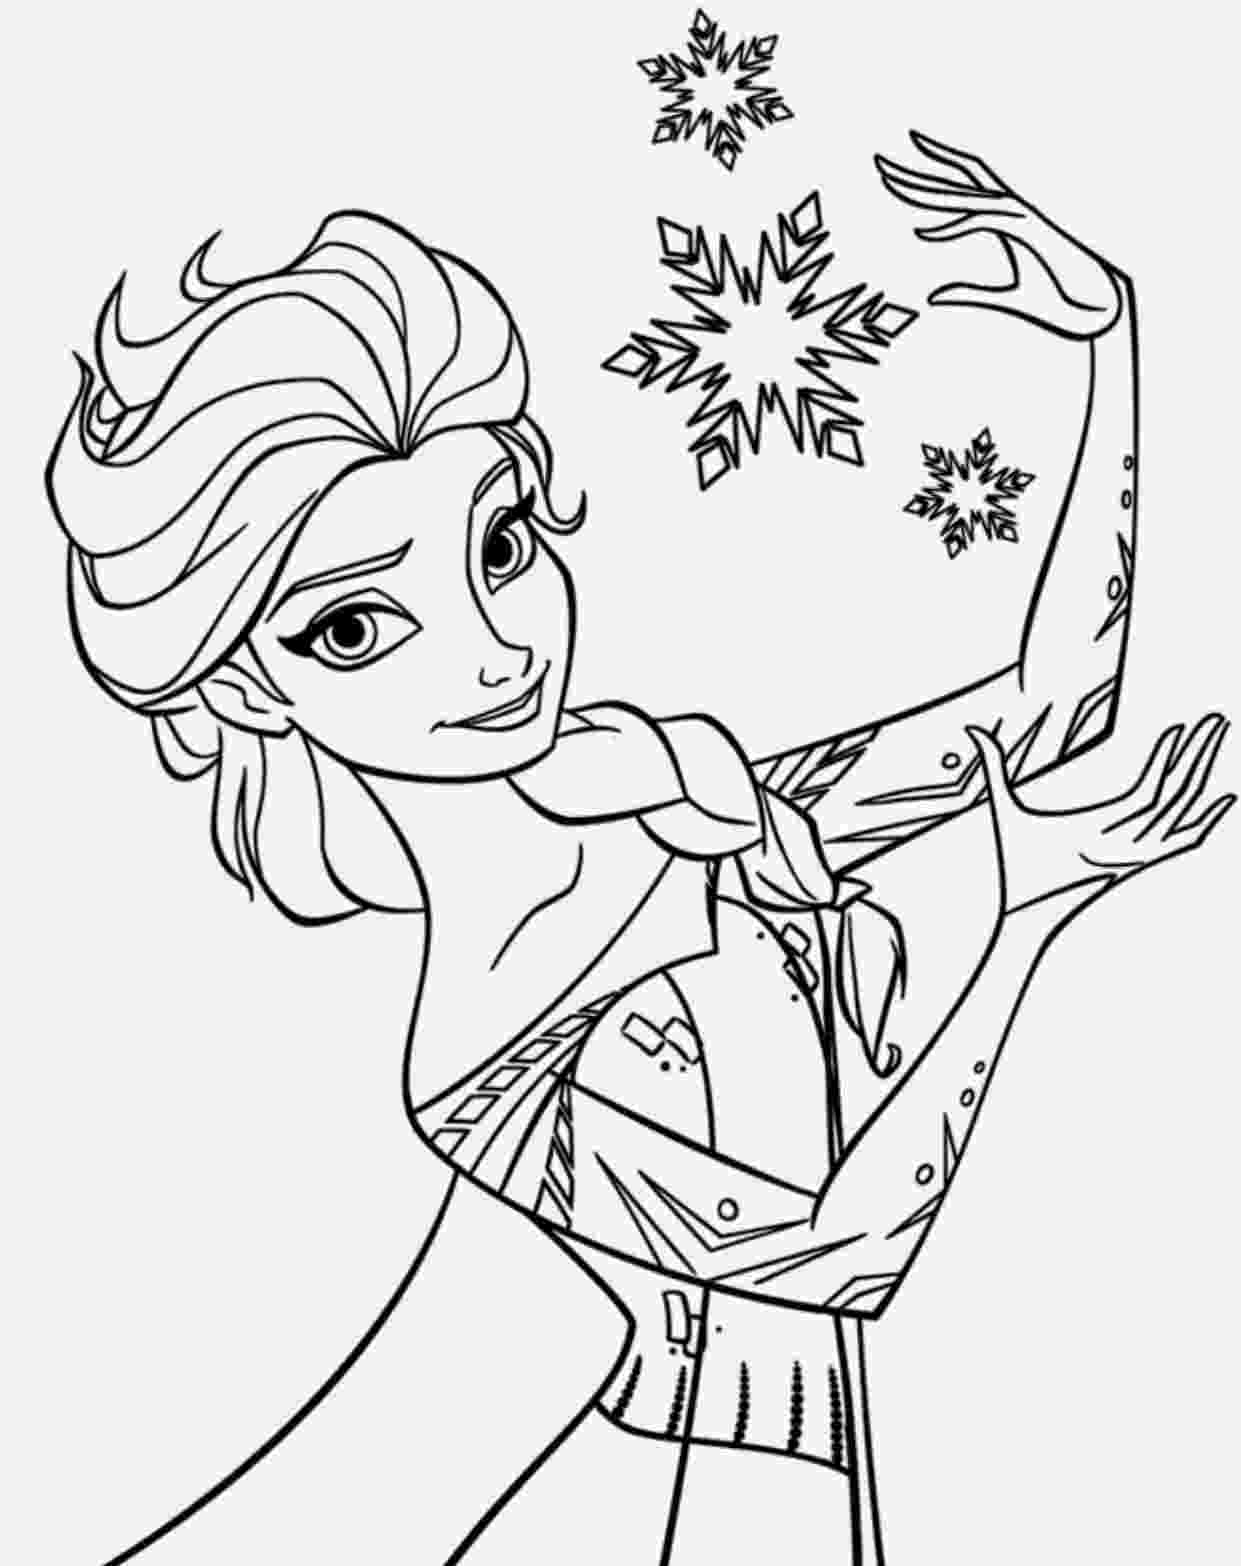 frozen free coloring pages 15 beautiful disney frozen coloring pages free instant coloring pages free frozen